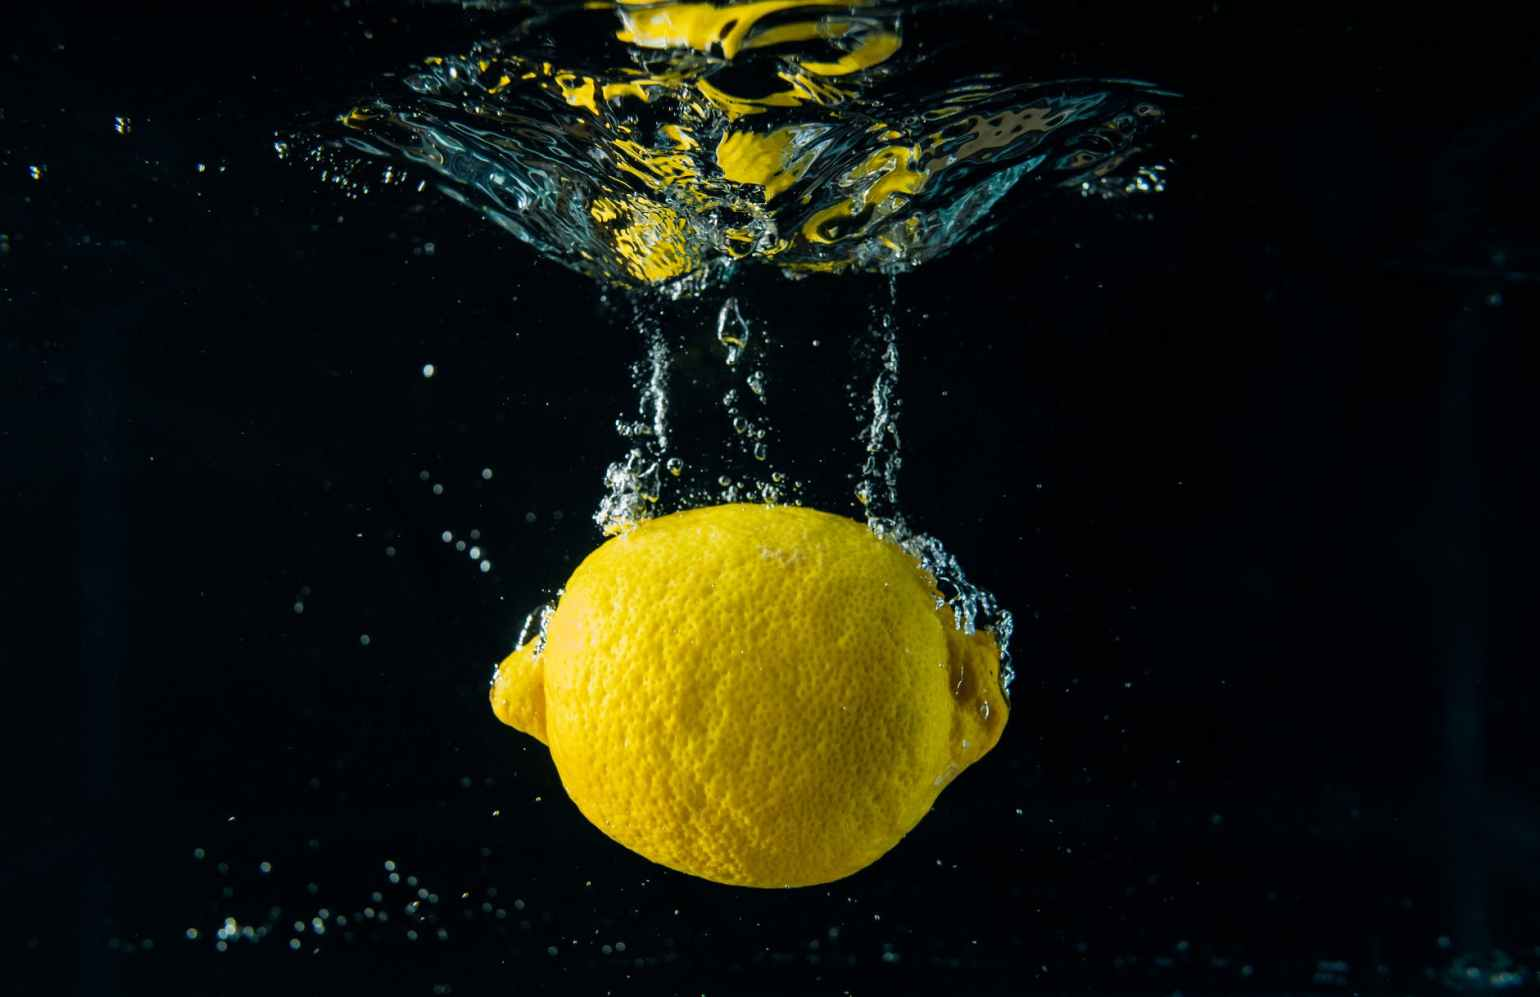 lemon in body of water